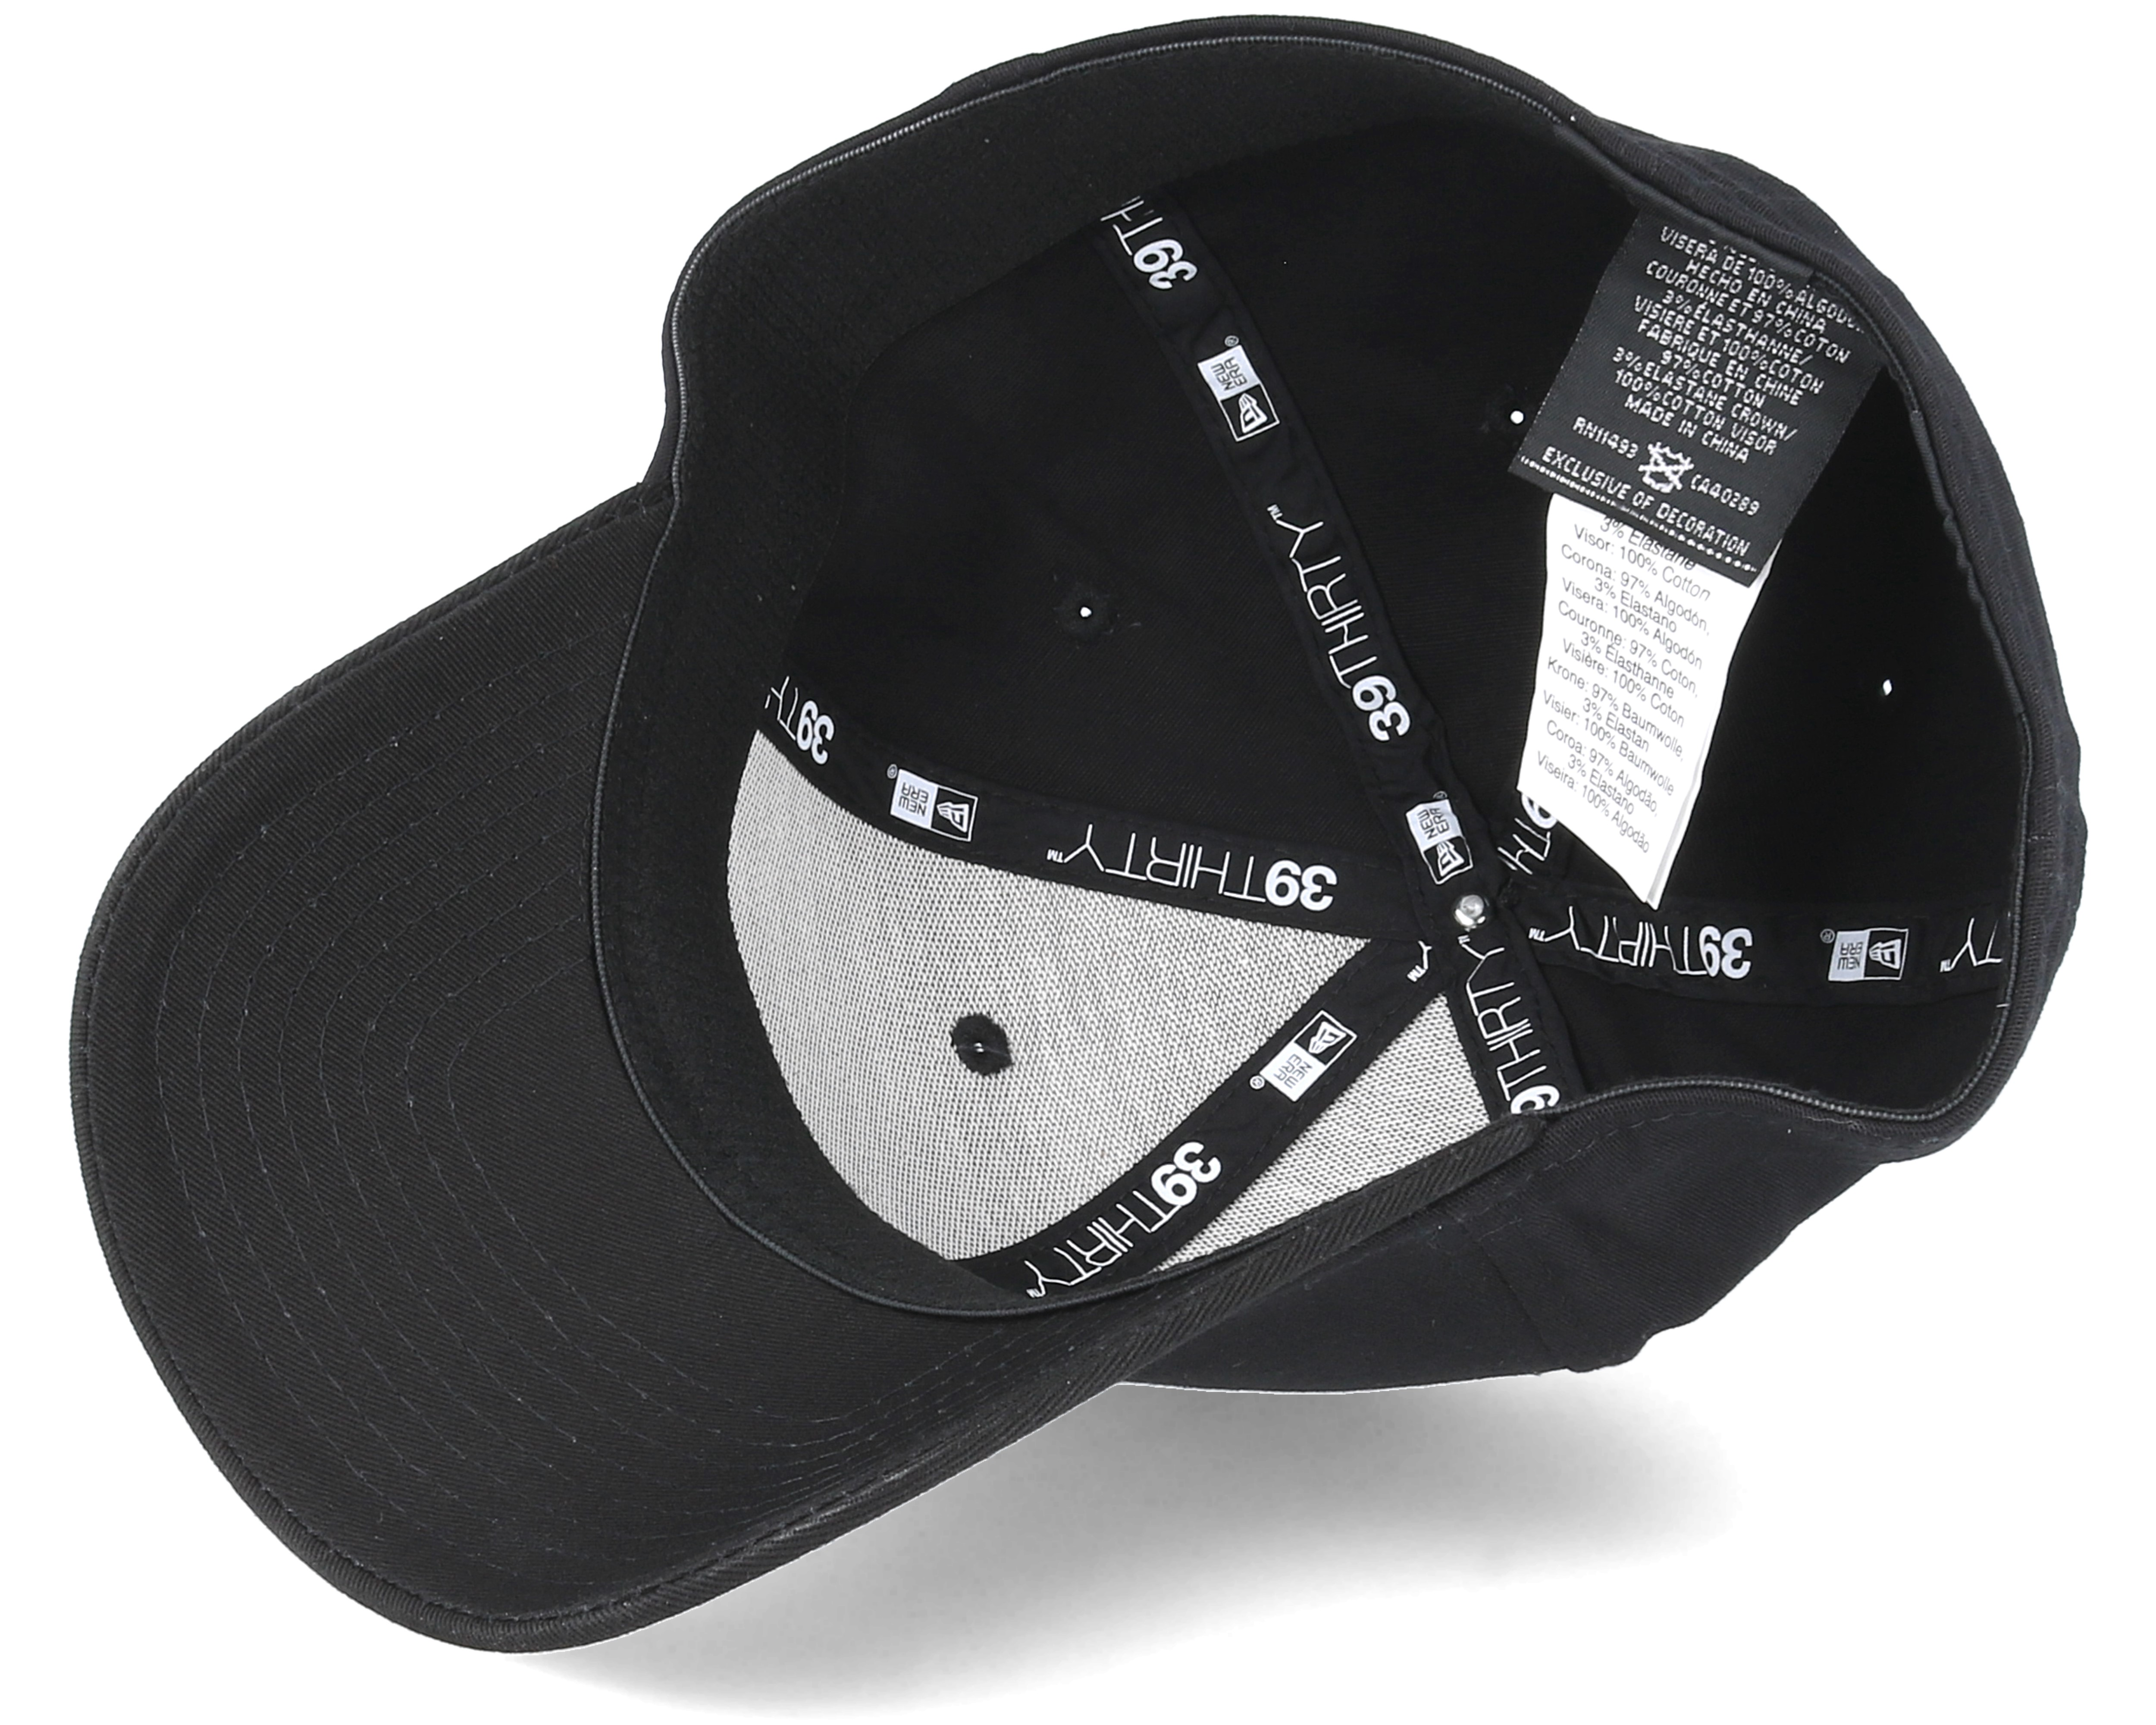 a2ef01aec92 ... discount code for tinfoil black 39thirty flexfit oakley caps hatstore  3974e 5dfc5